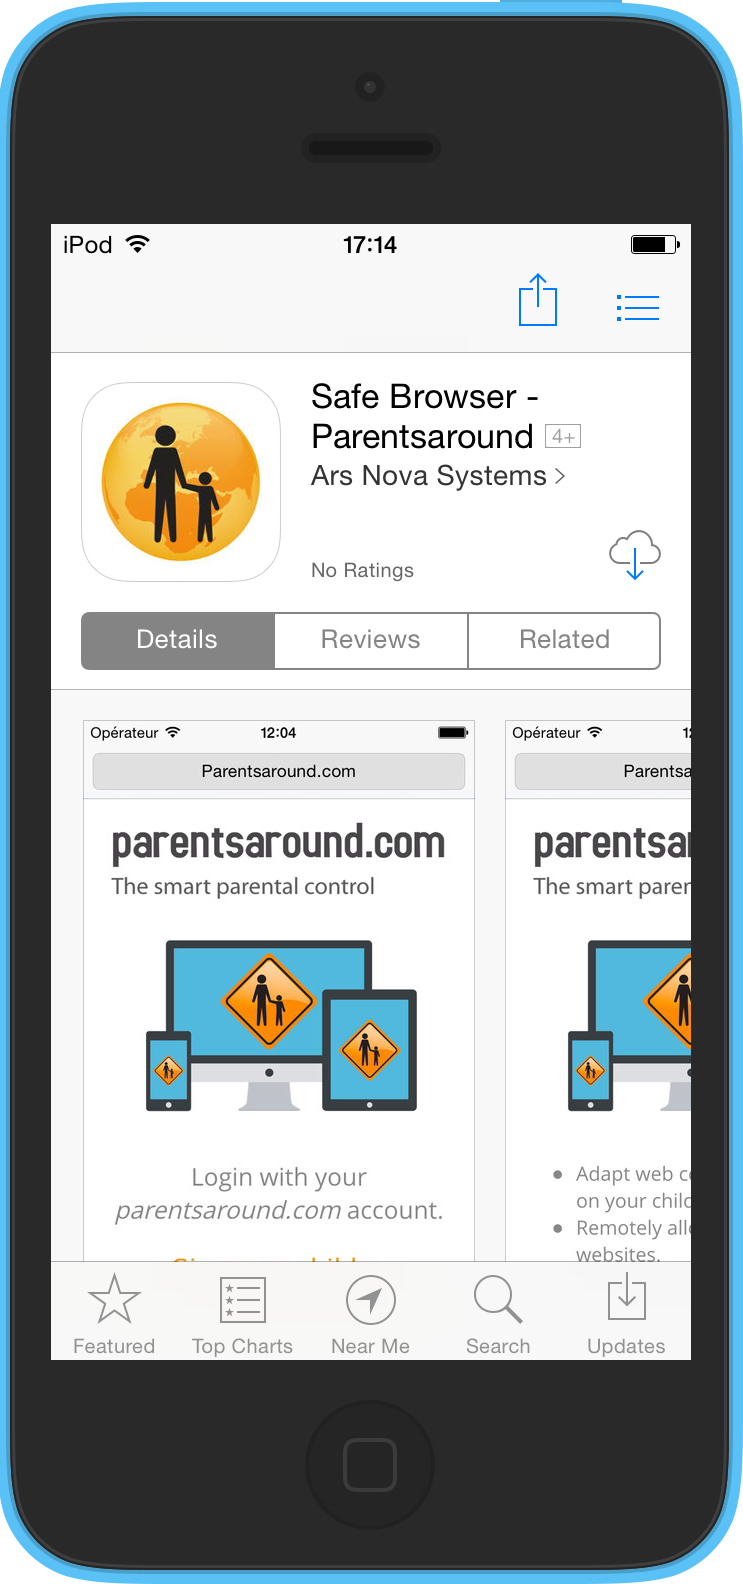 Parentsaround's safe browser on the App Store